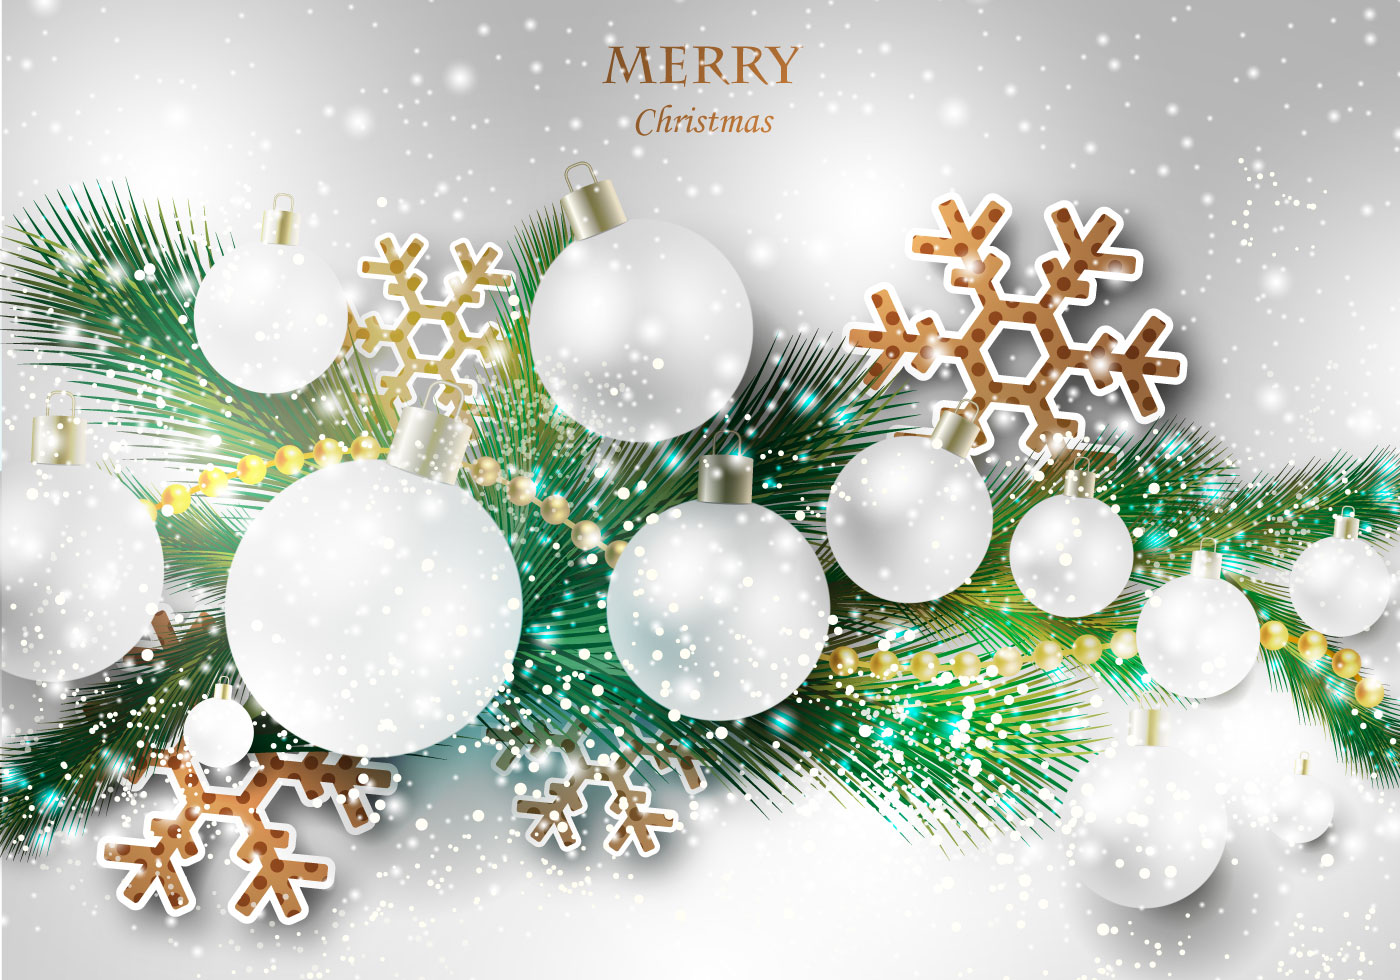 Free Merry Christmas Vector - Download Free Vector Art, Stock ...